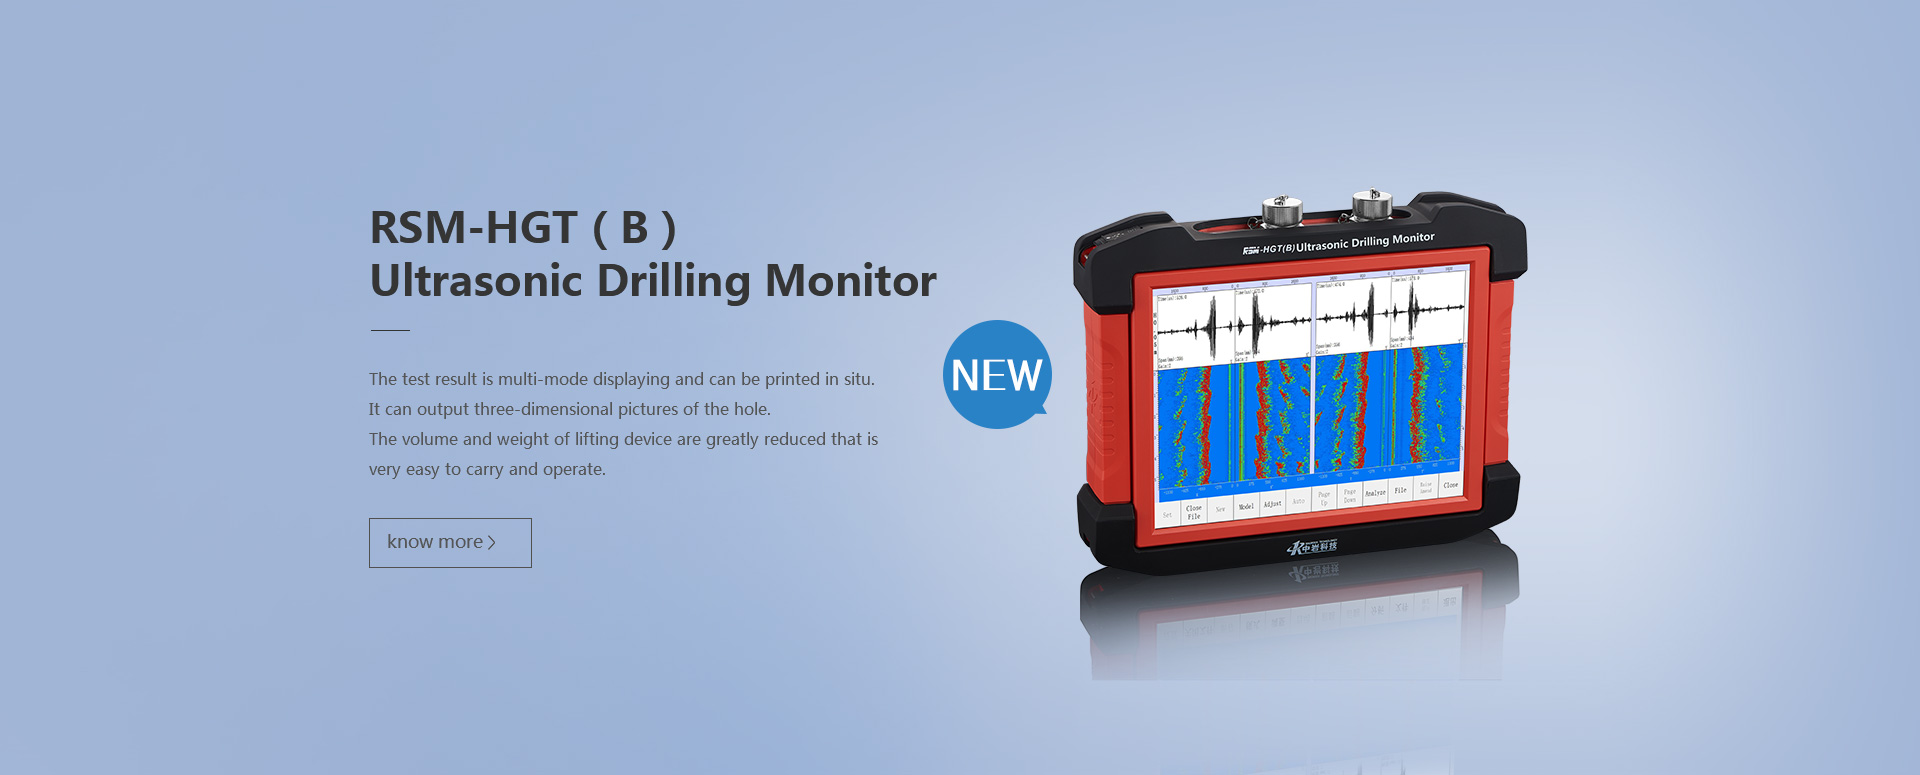 Ultrasonic Drilling Monitor